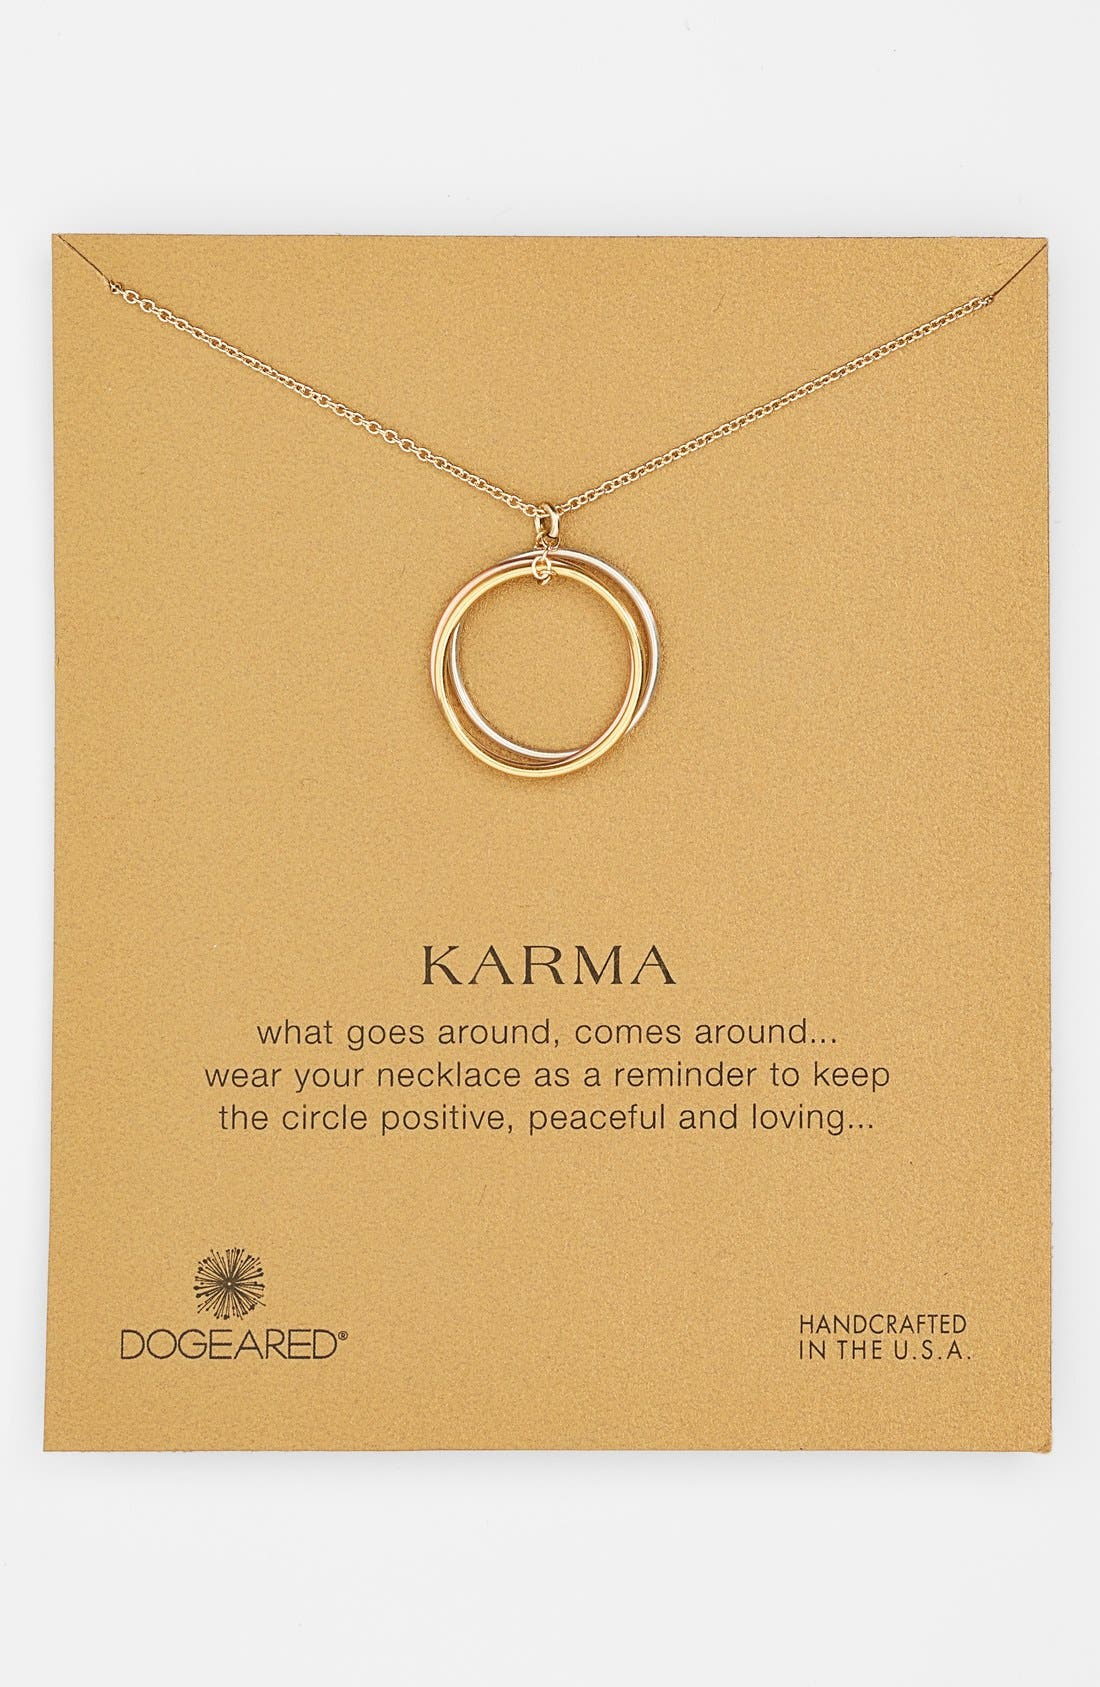 Alternate Image 1 Selected - Dogeared 'Karma' Boxed Mixed Metal Charm Necklace